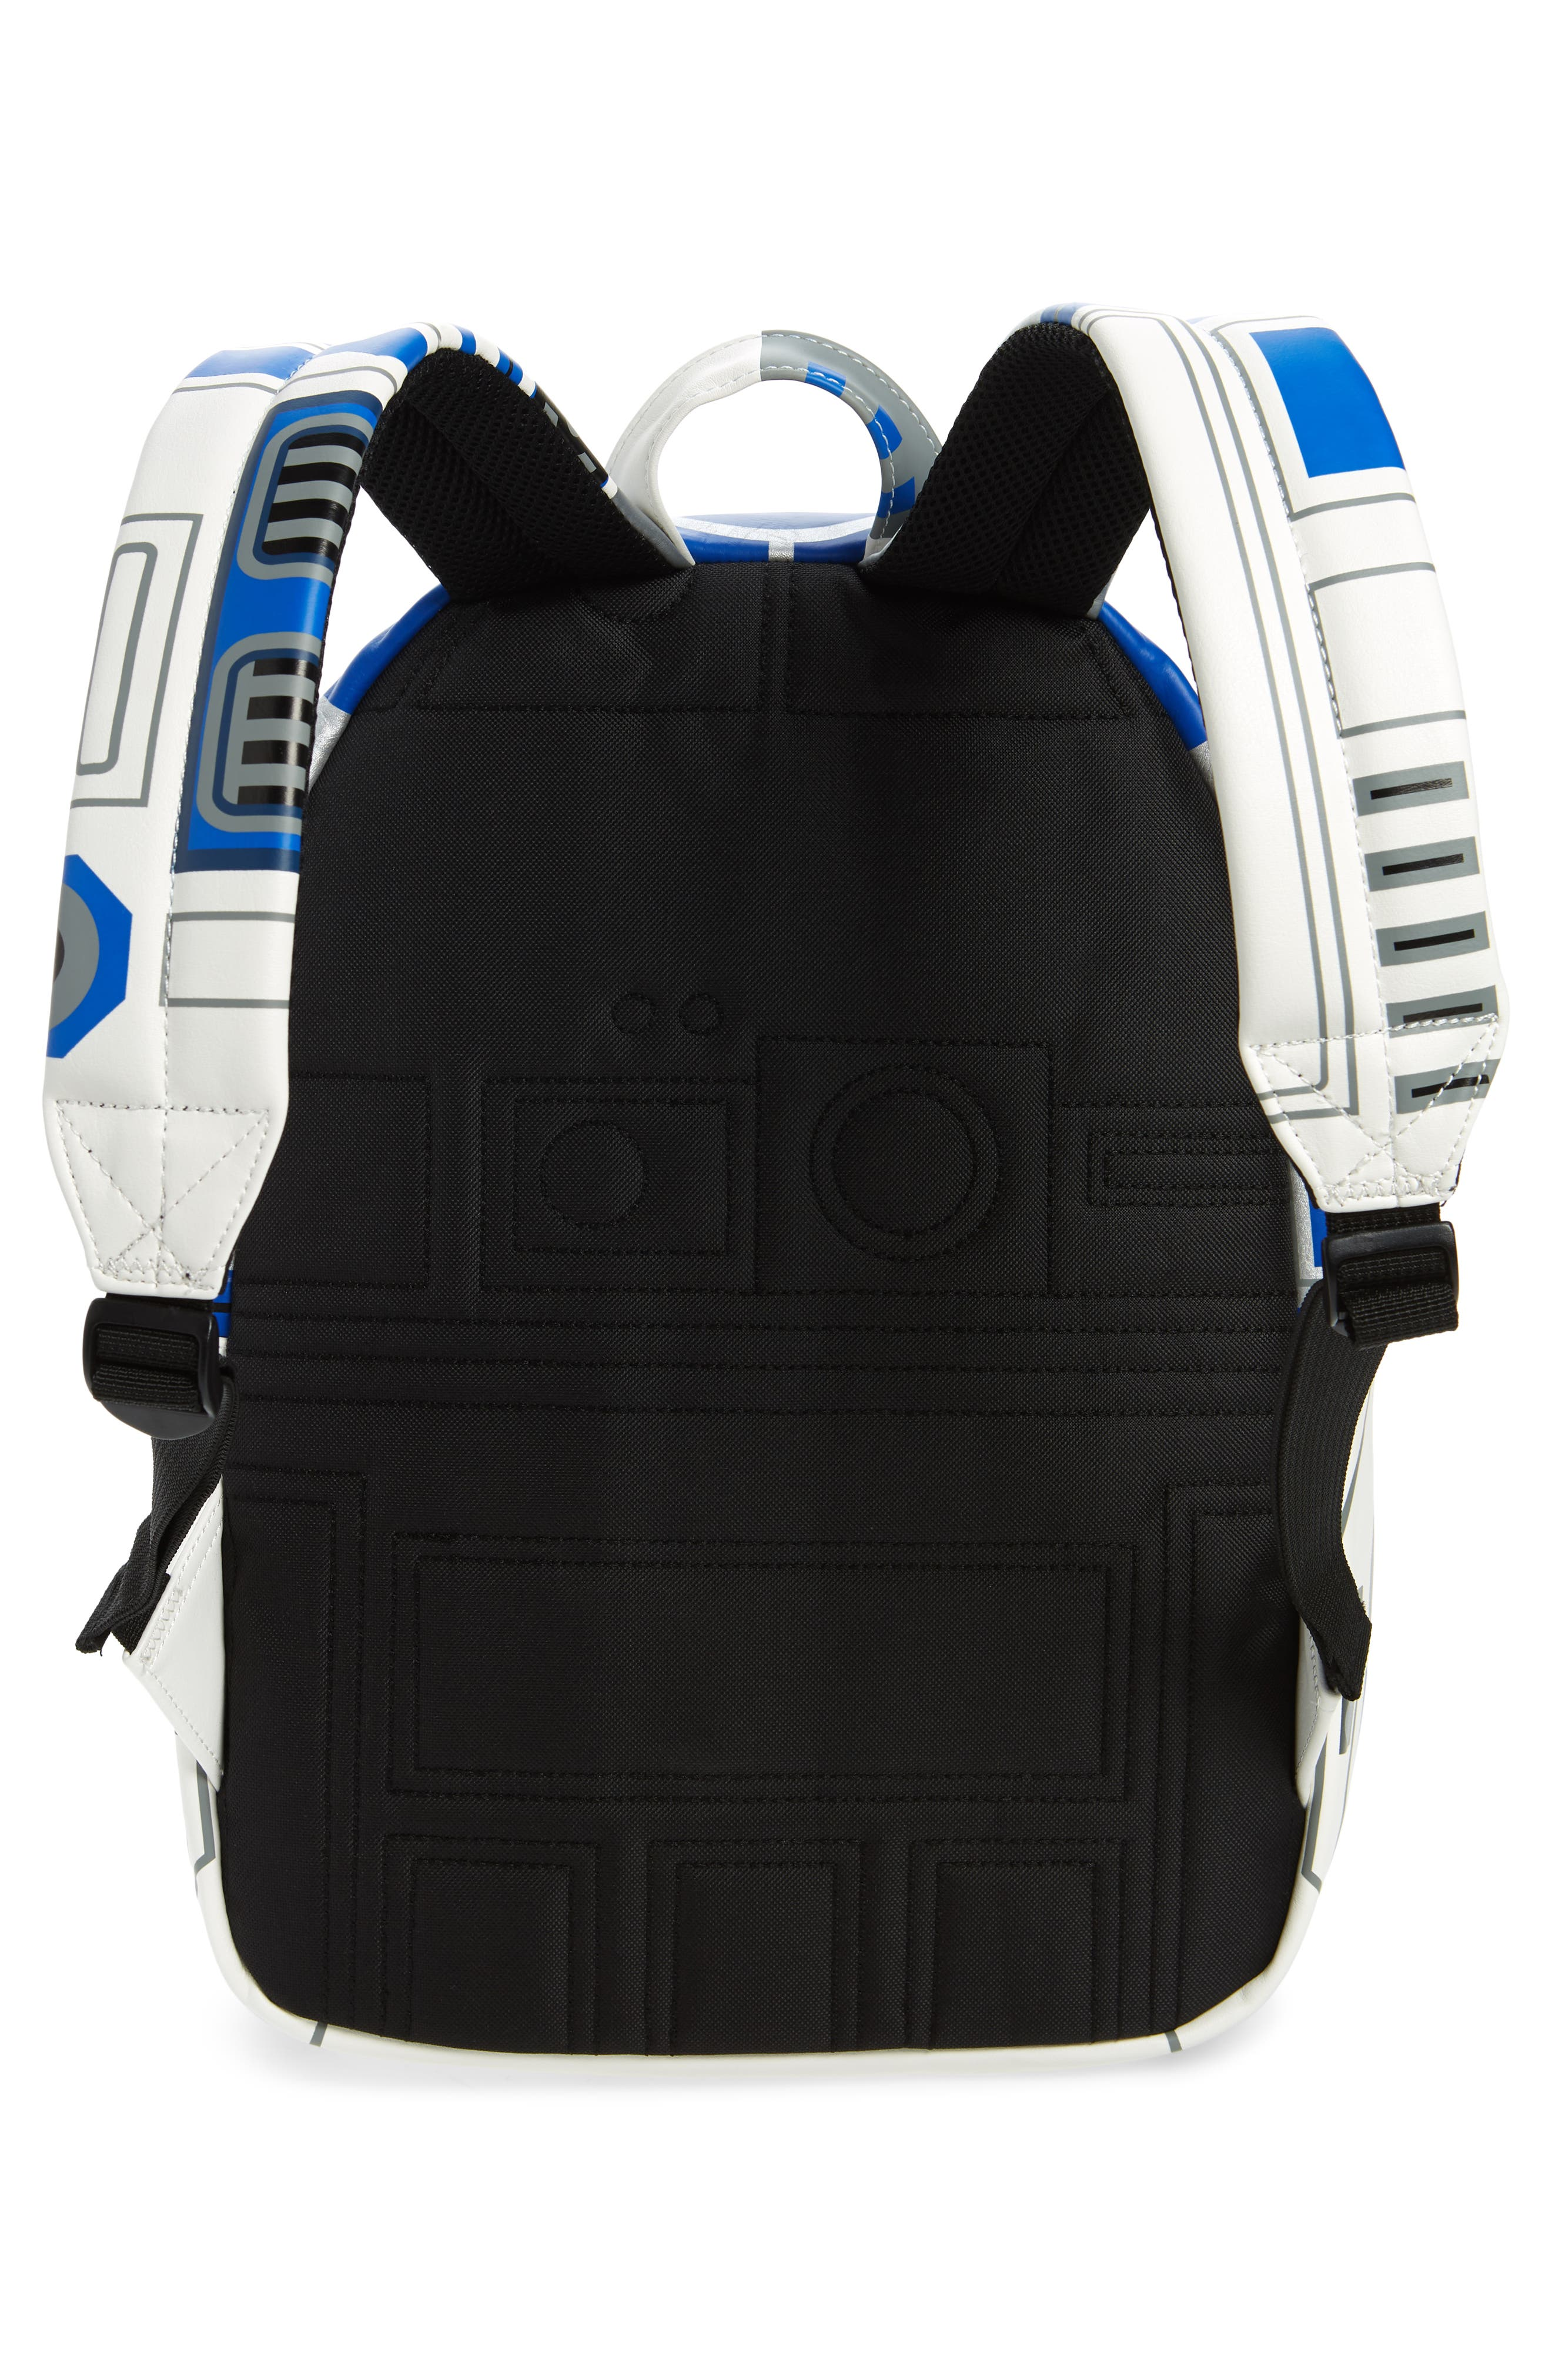 x Star Wars R2-D2 Faux Leather Backpack,                             Alternate thumbnail 2, color,                             040